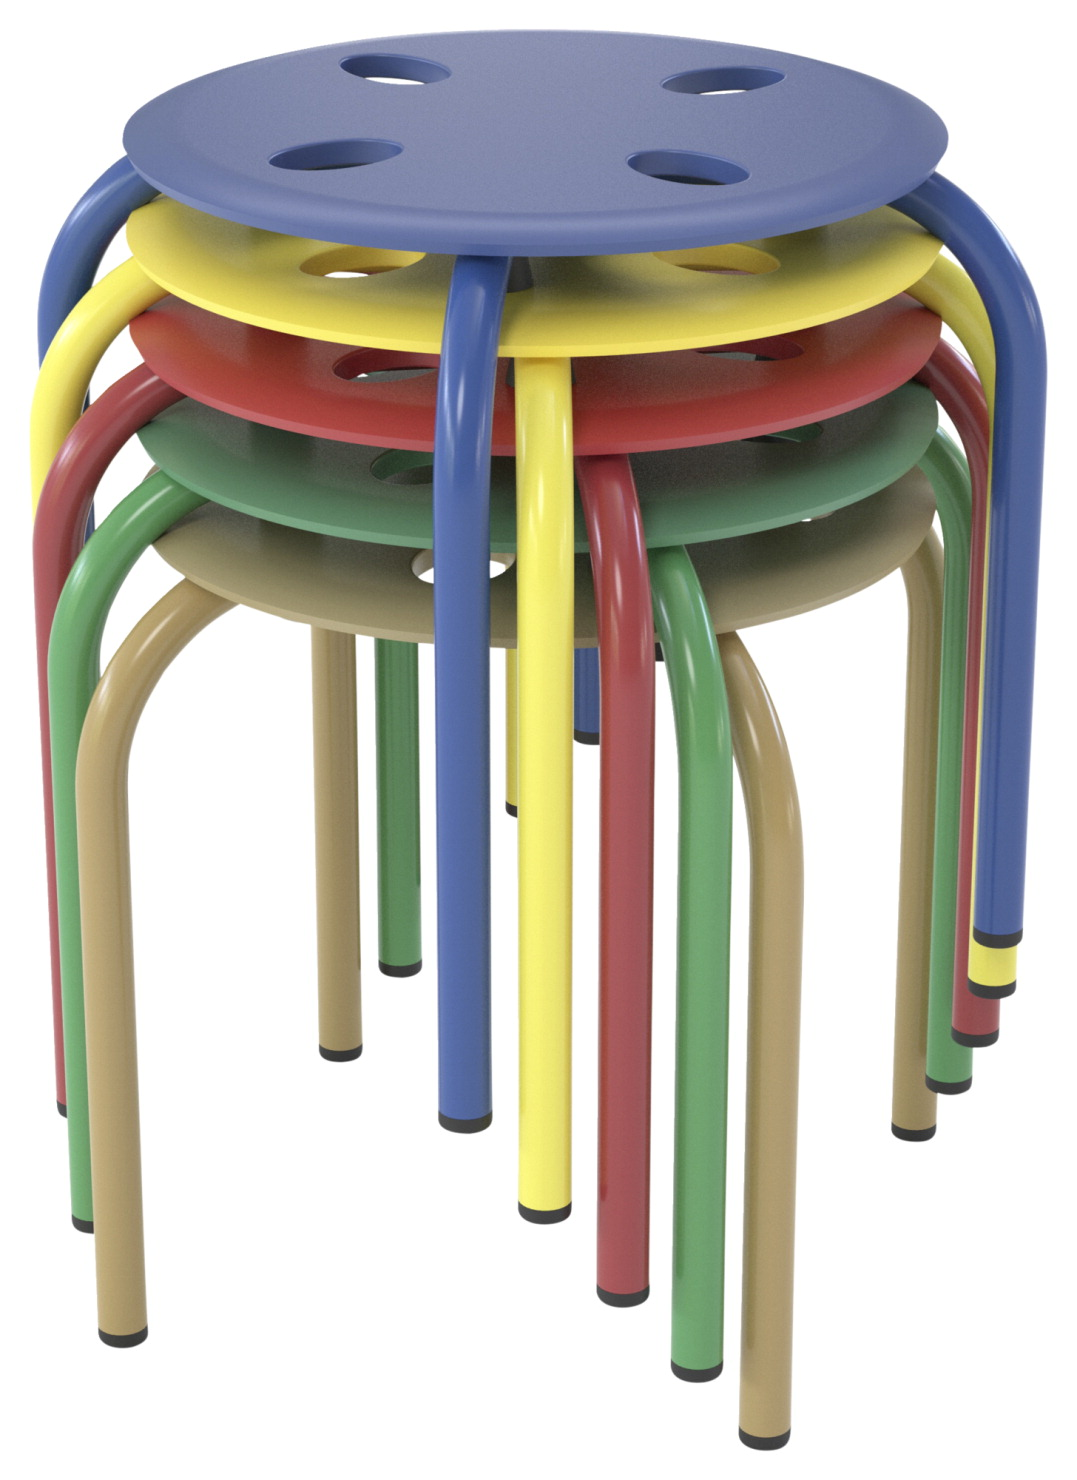 Classroom Select Prima Stool, 12 Inch Seat Height, Set of 5